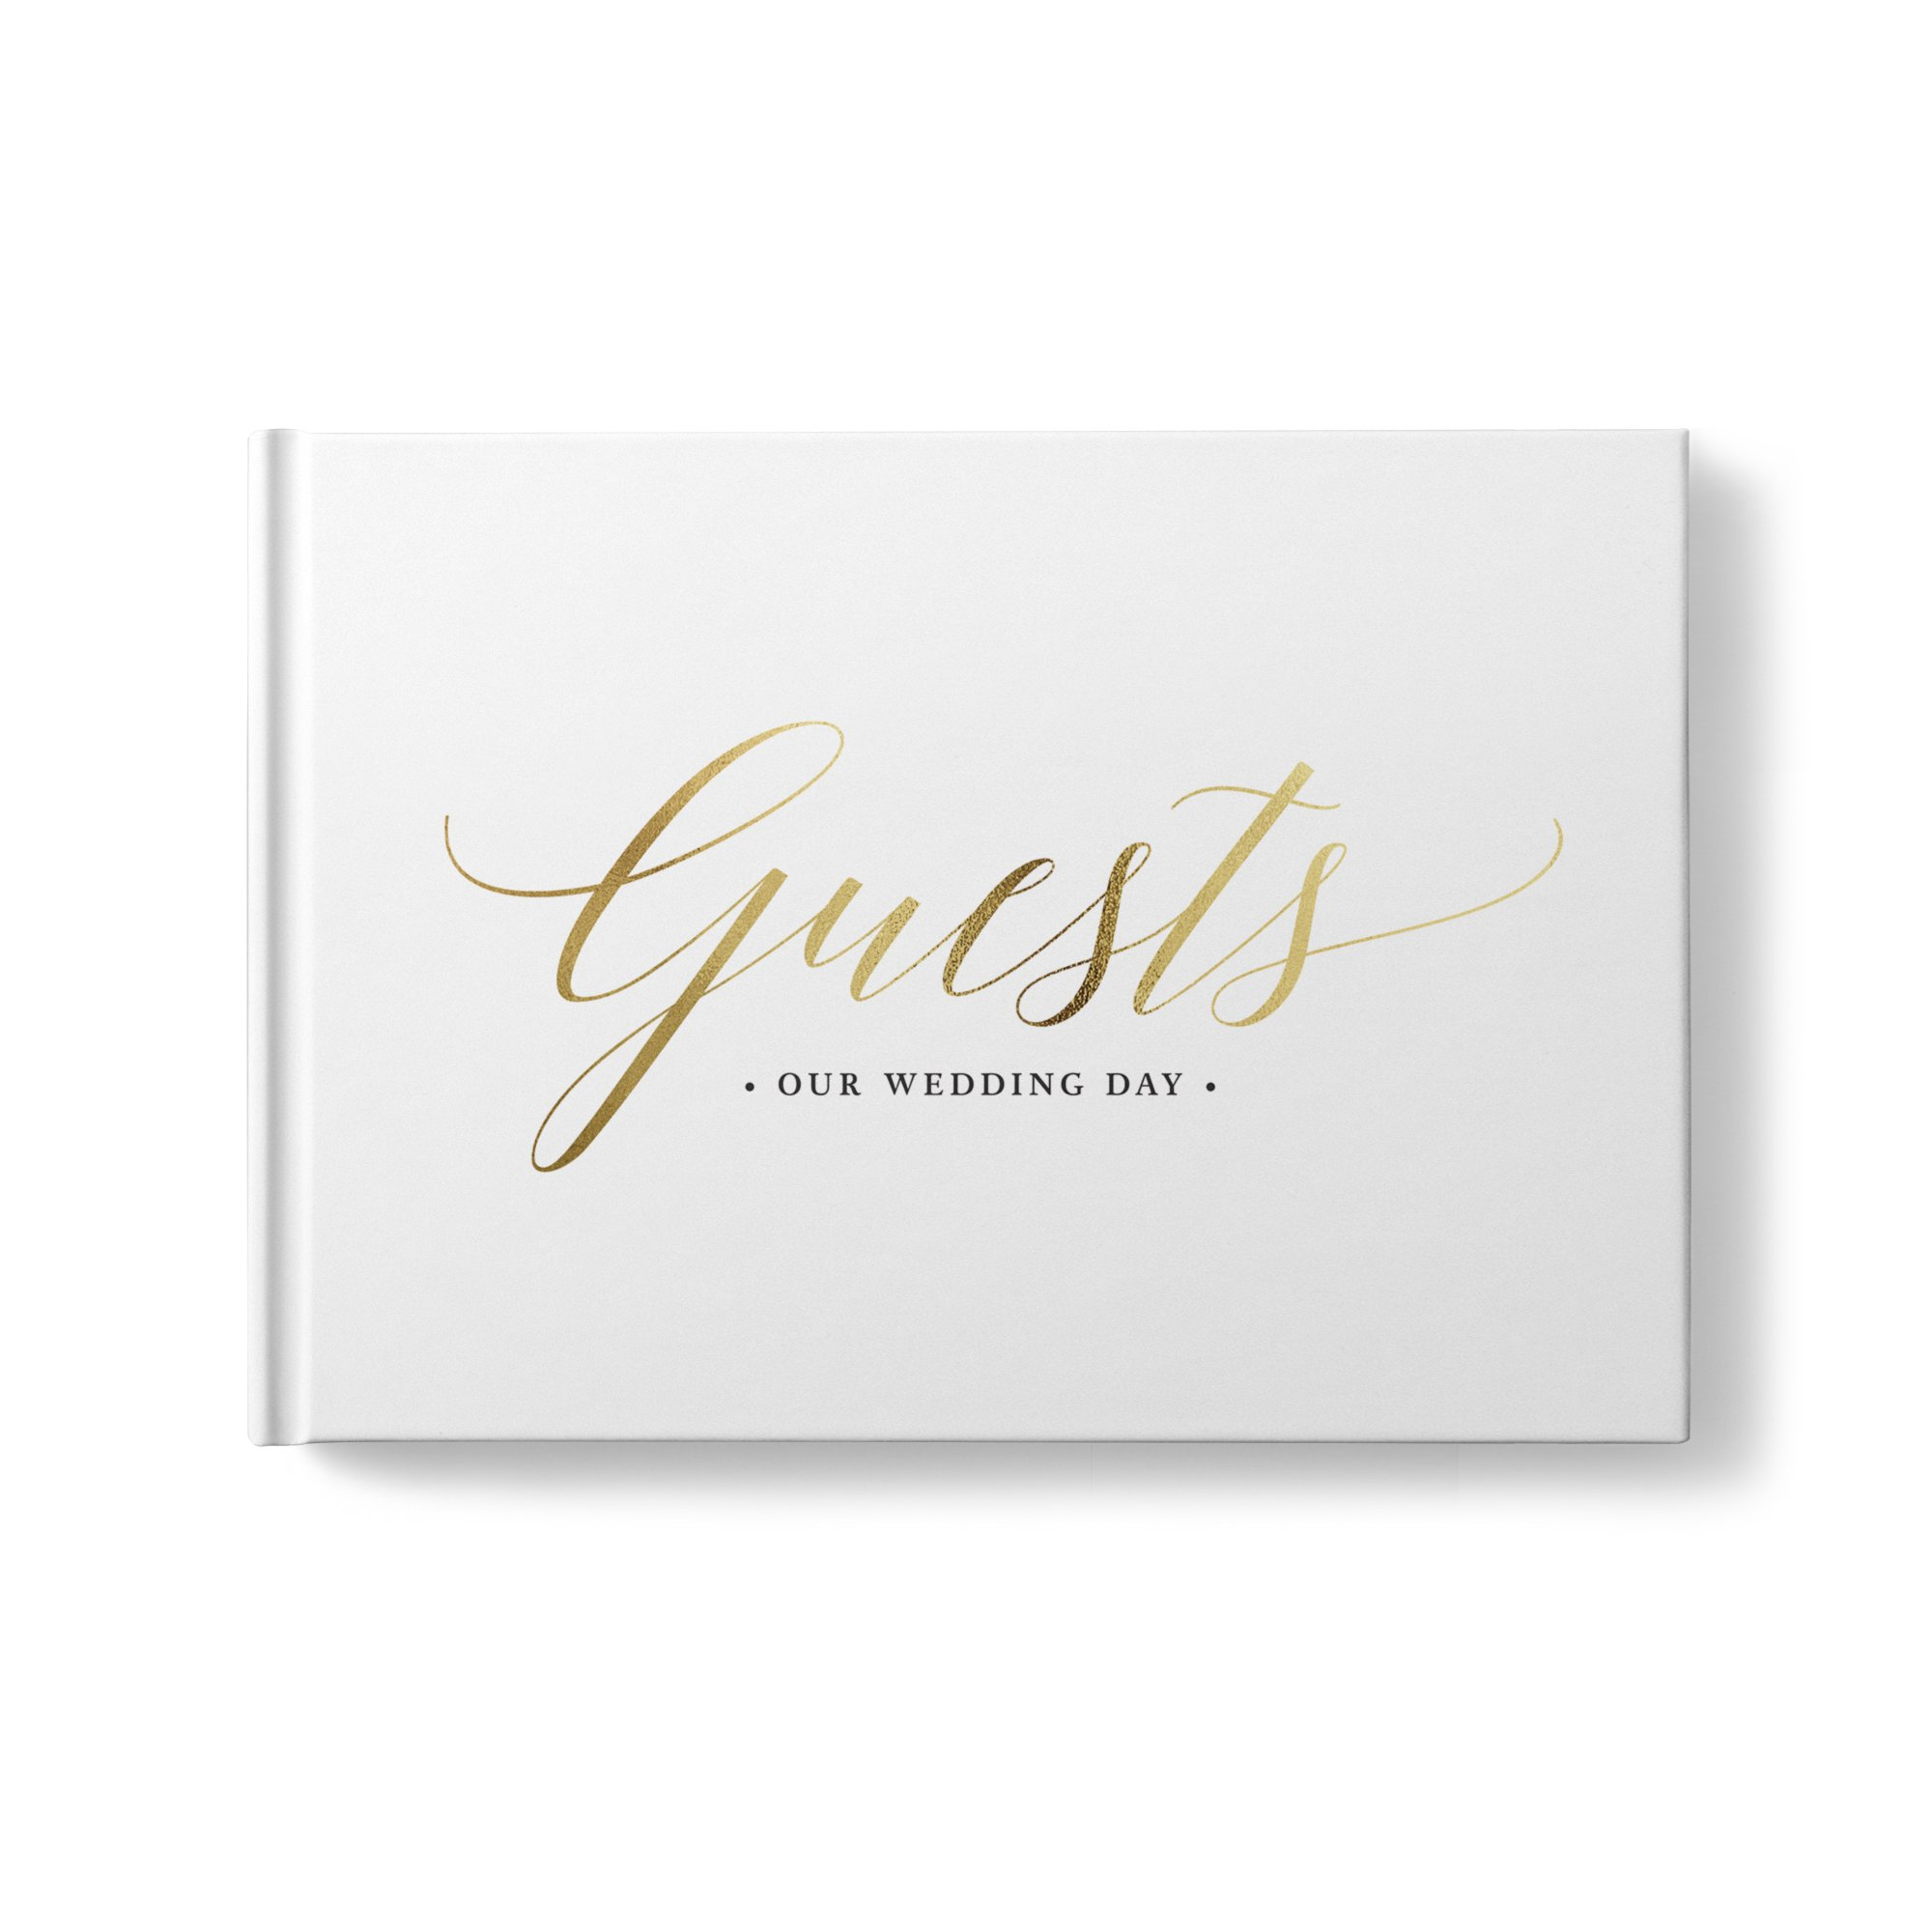 please + thanks Gold Foil Wedding Guest Book, White Casebound Hardcover, Acid-Free Blank White Interior Sheets (9 x 7 Inch)